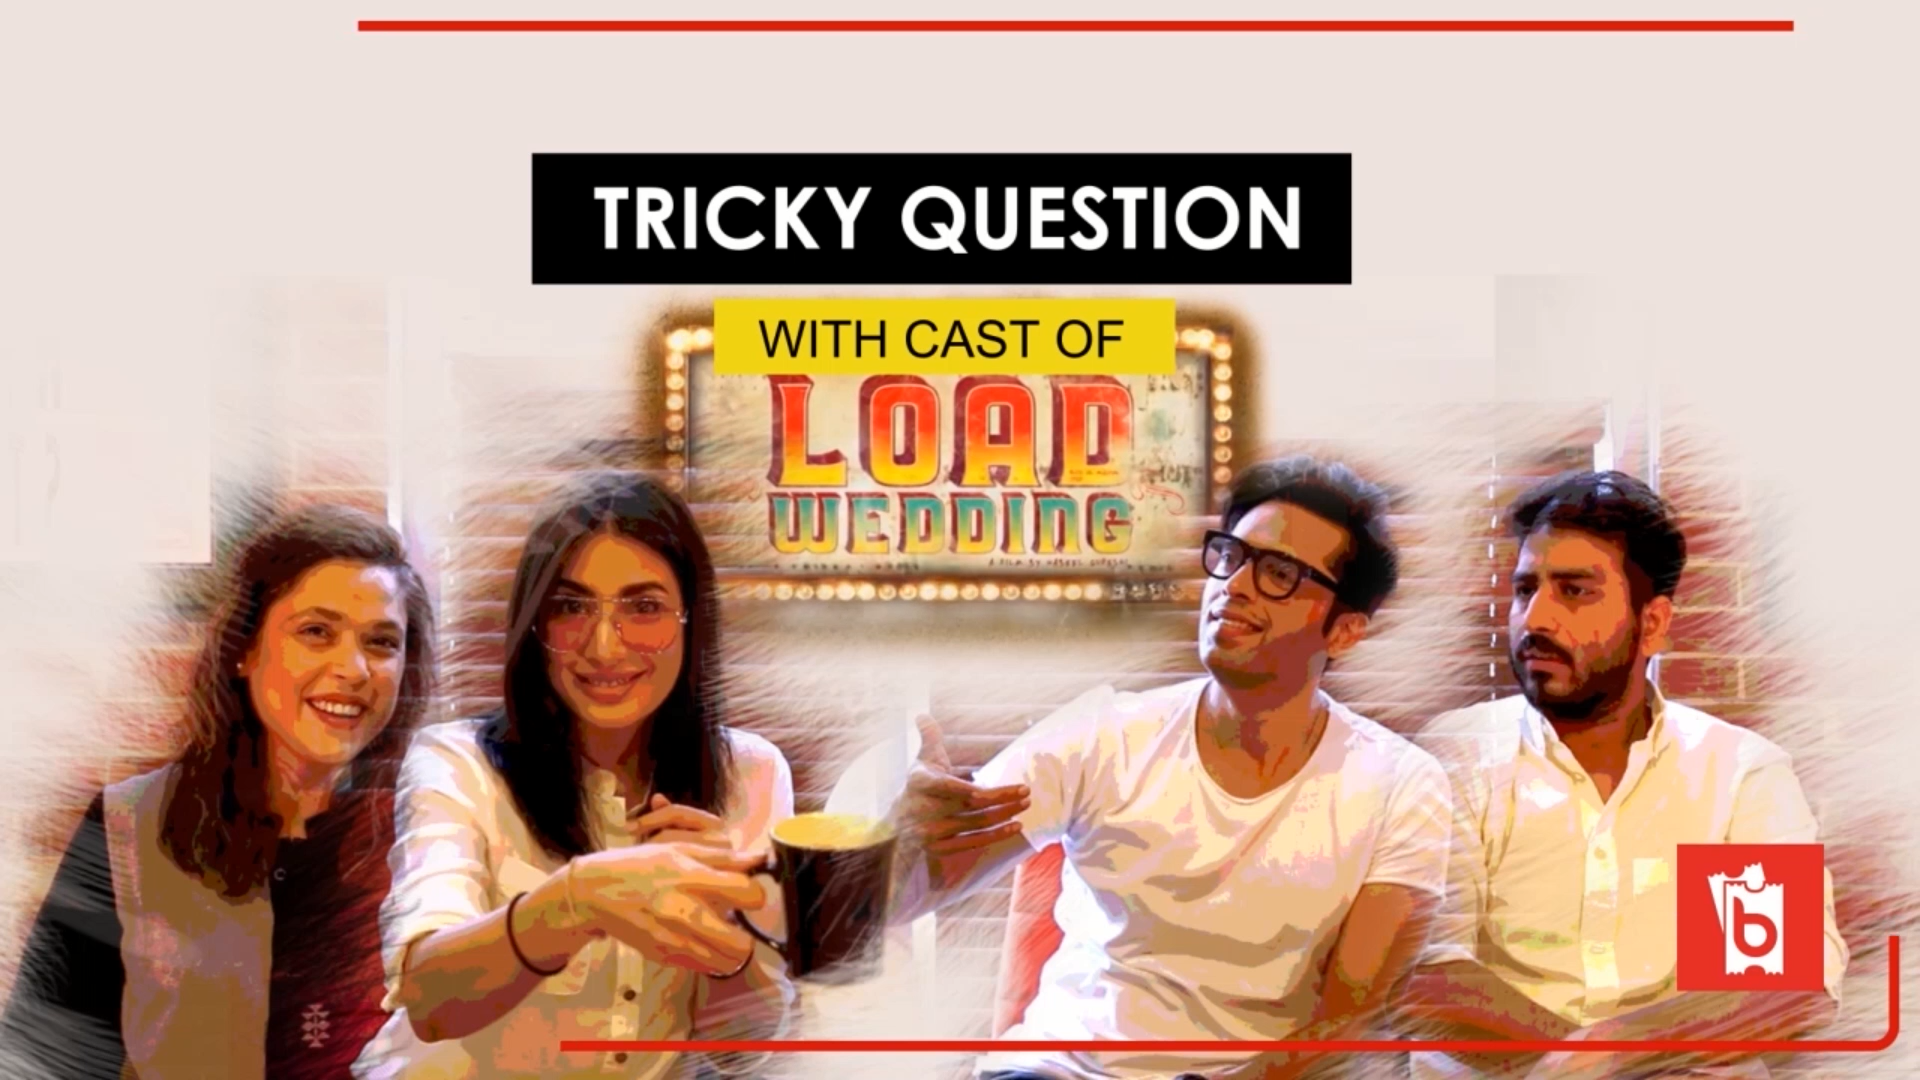 Tricky Questions with Fahad Mustafa and Mehwish Hayat